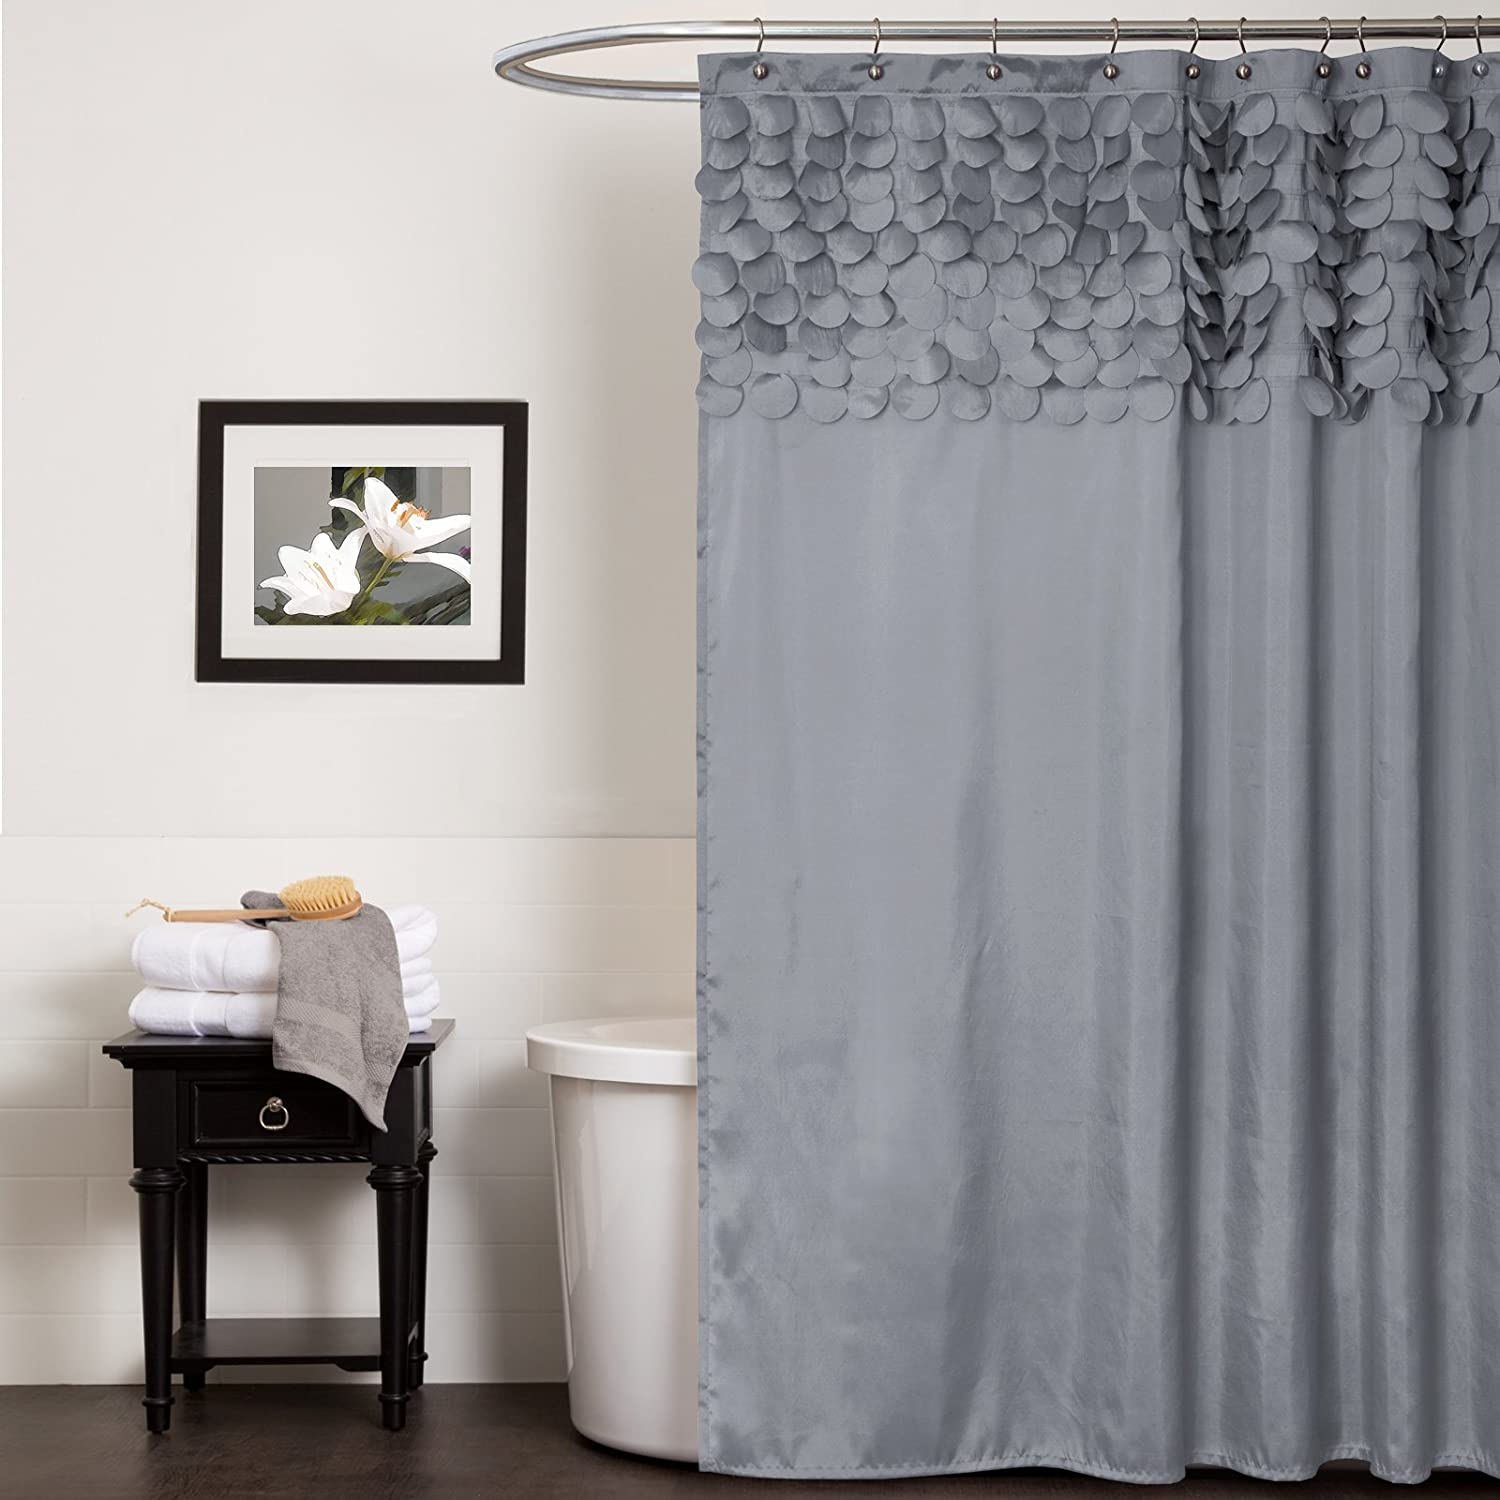 valance gray shower p nimbus also with x attached might stripe you fabric consider curtain